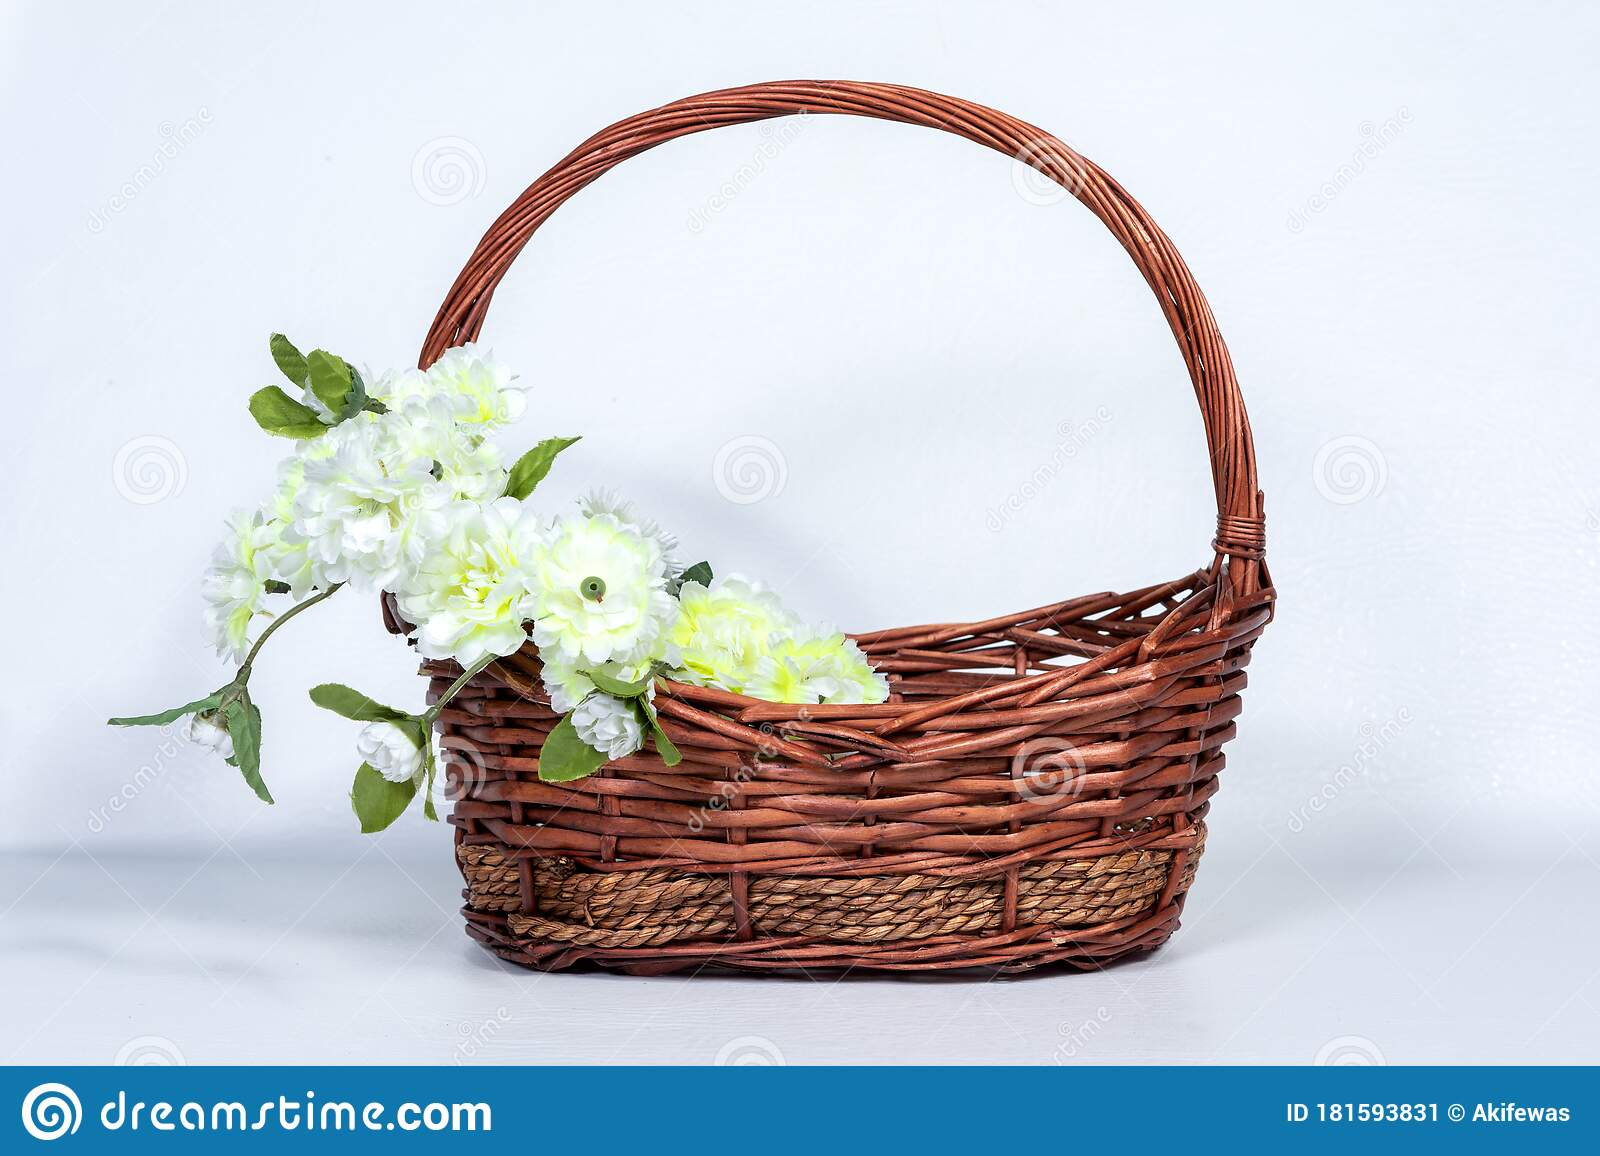 Brown Wicker Basket With Flower Arrangements On The Handle Of The Basket Stock Image Image Of Color Flowers 181593831